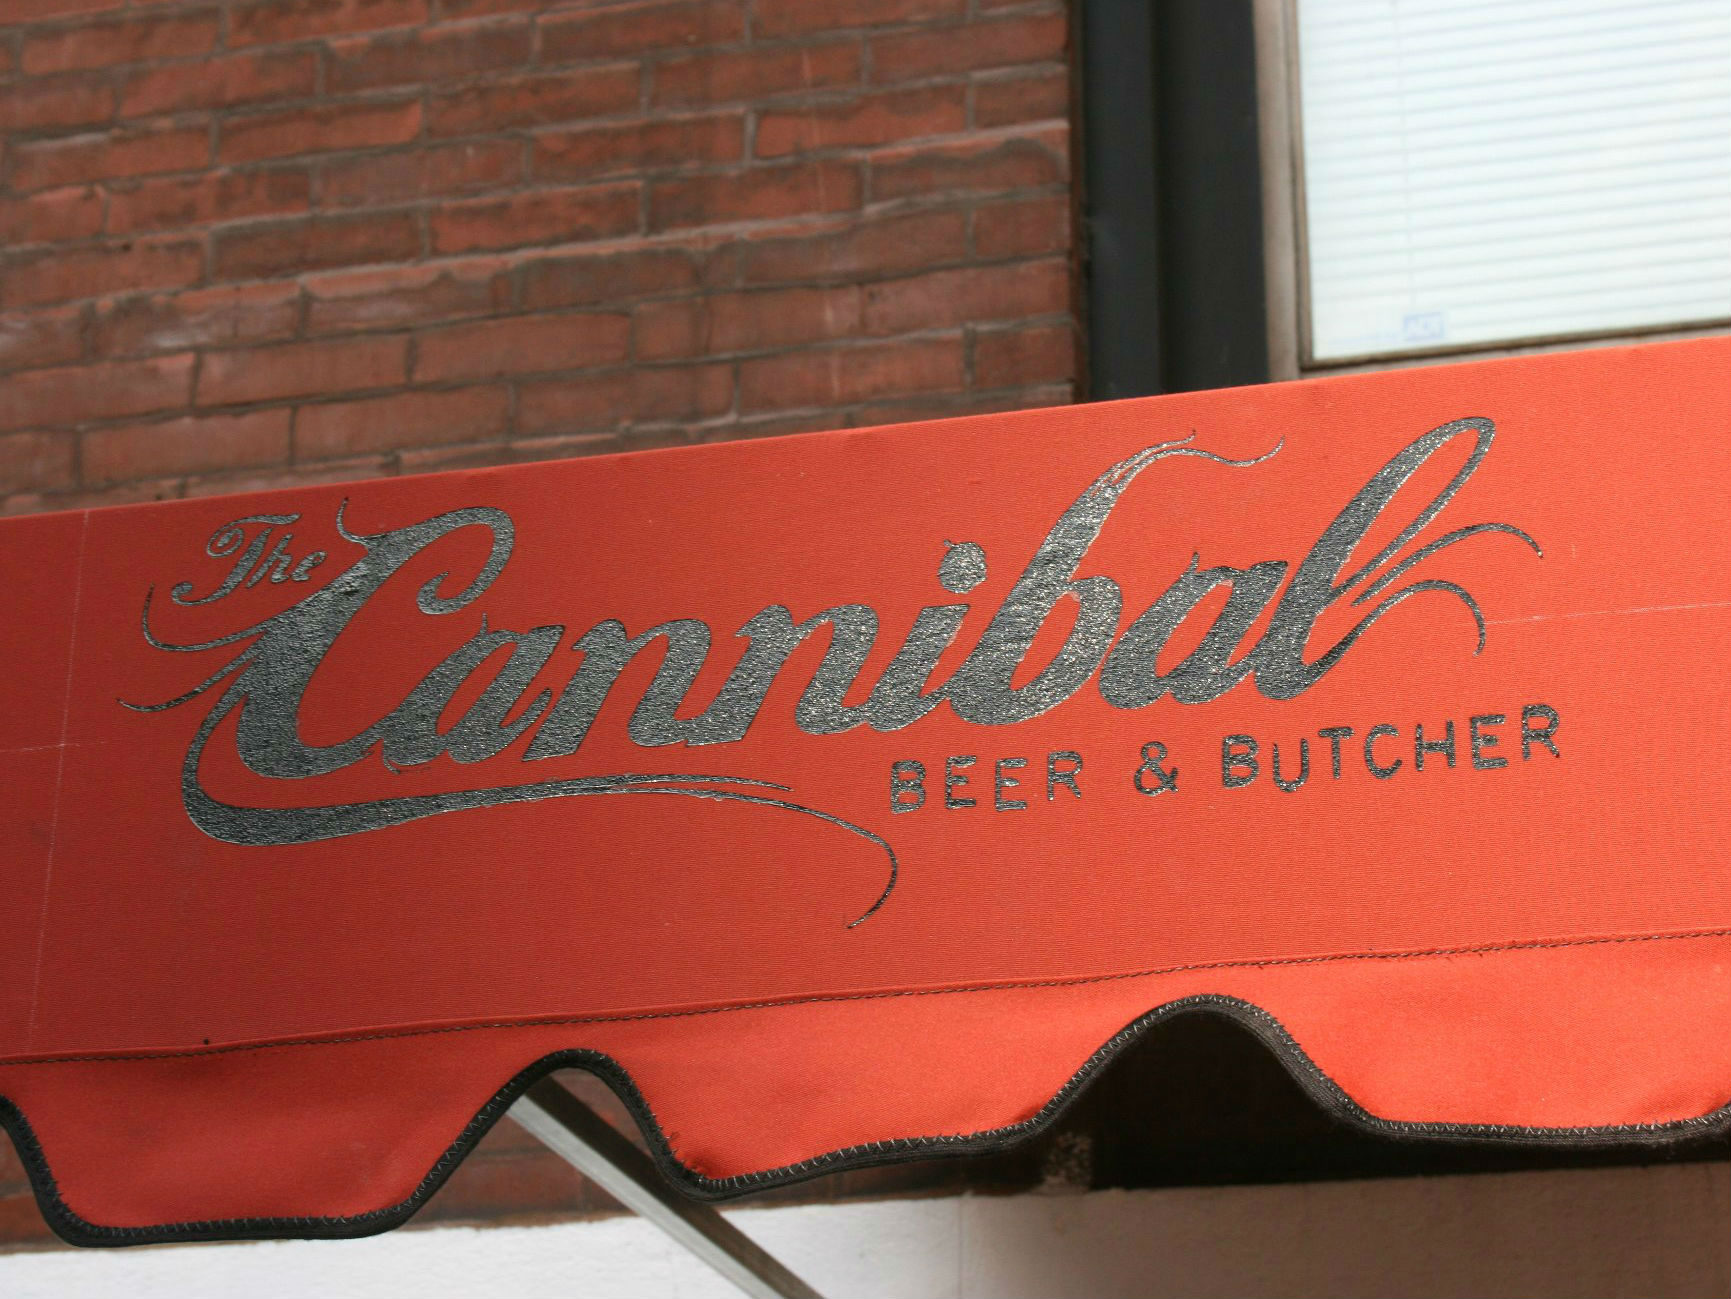 Cannibal Beer & Butcher, The photo